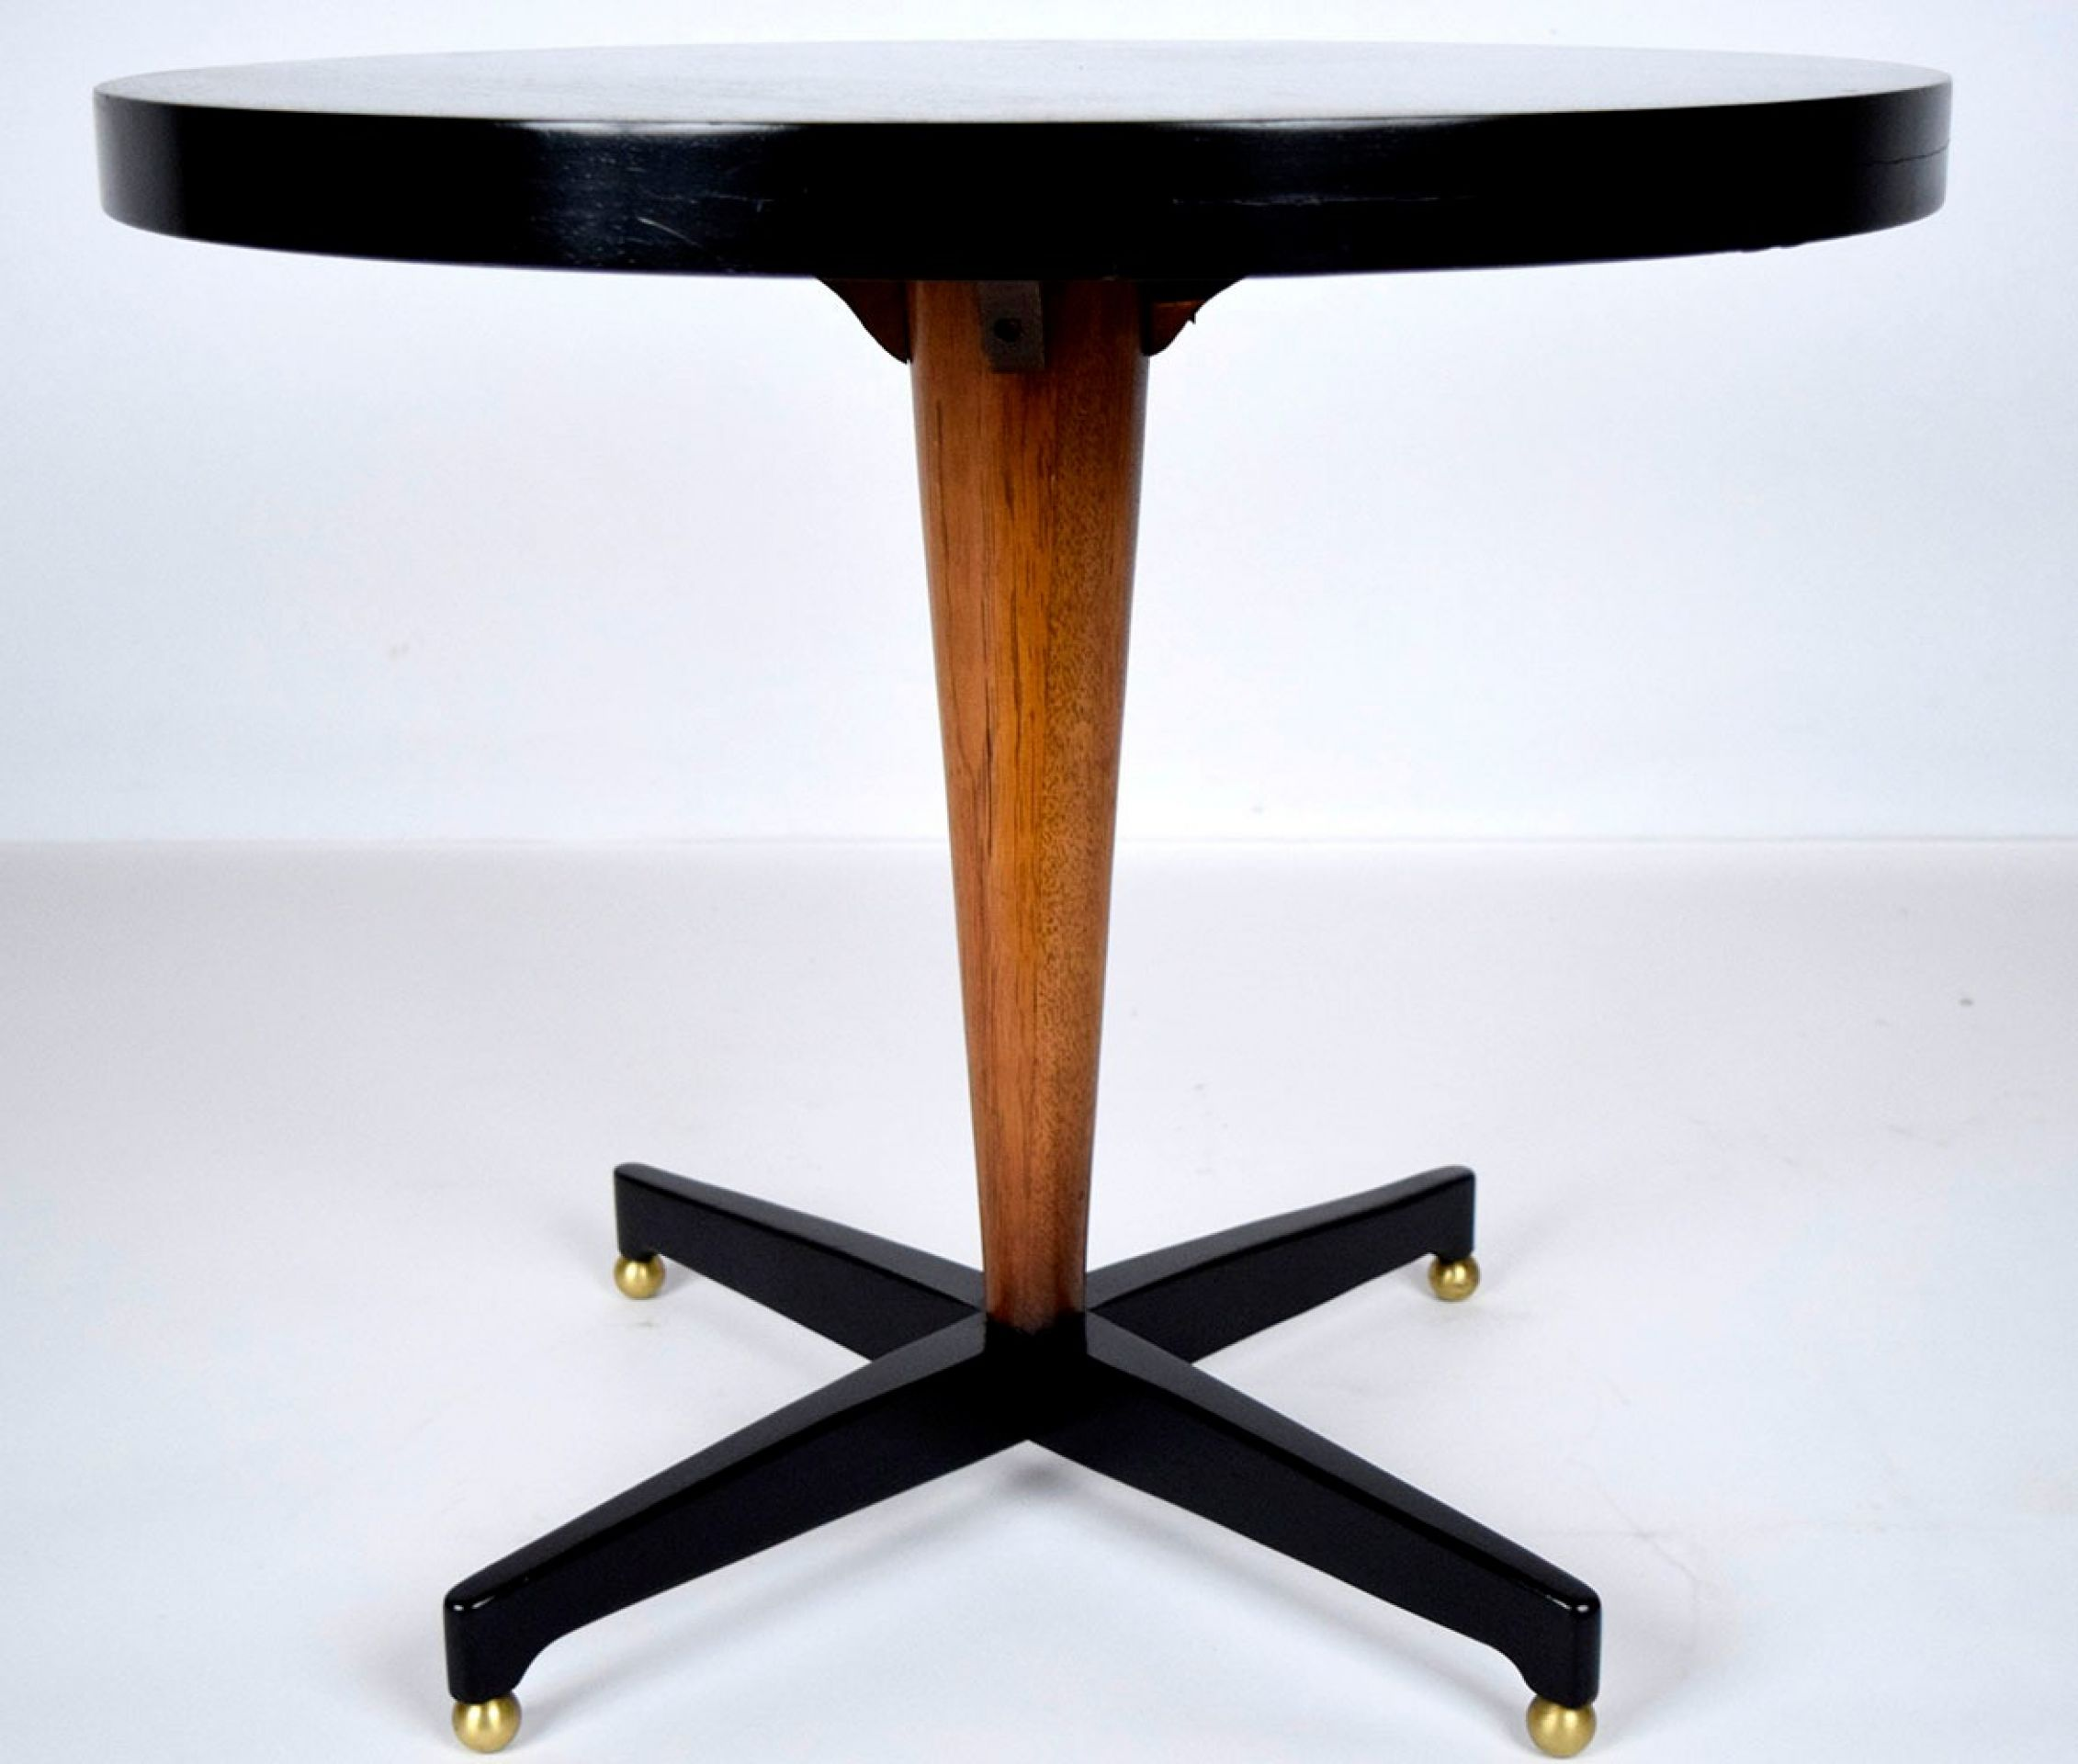 Vintage 1970s Occasional Table by Baker